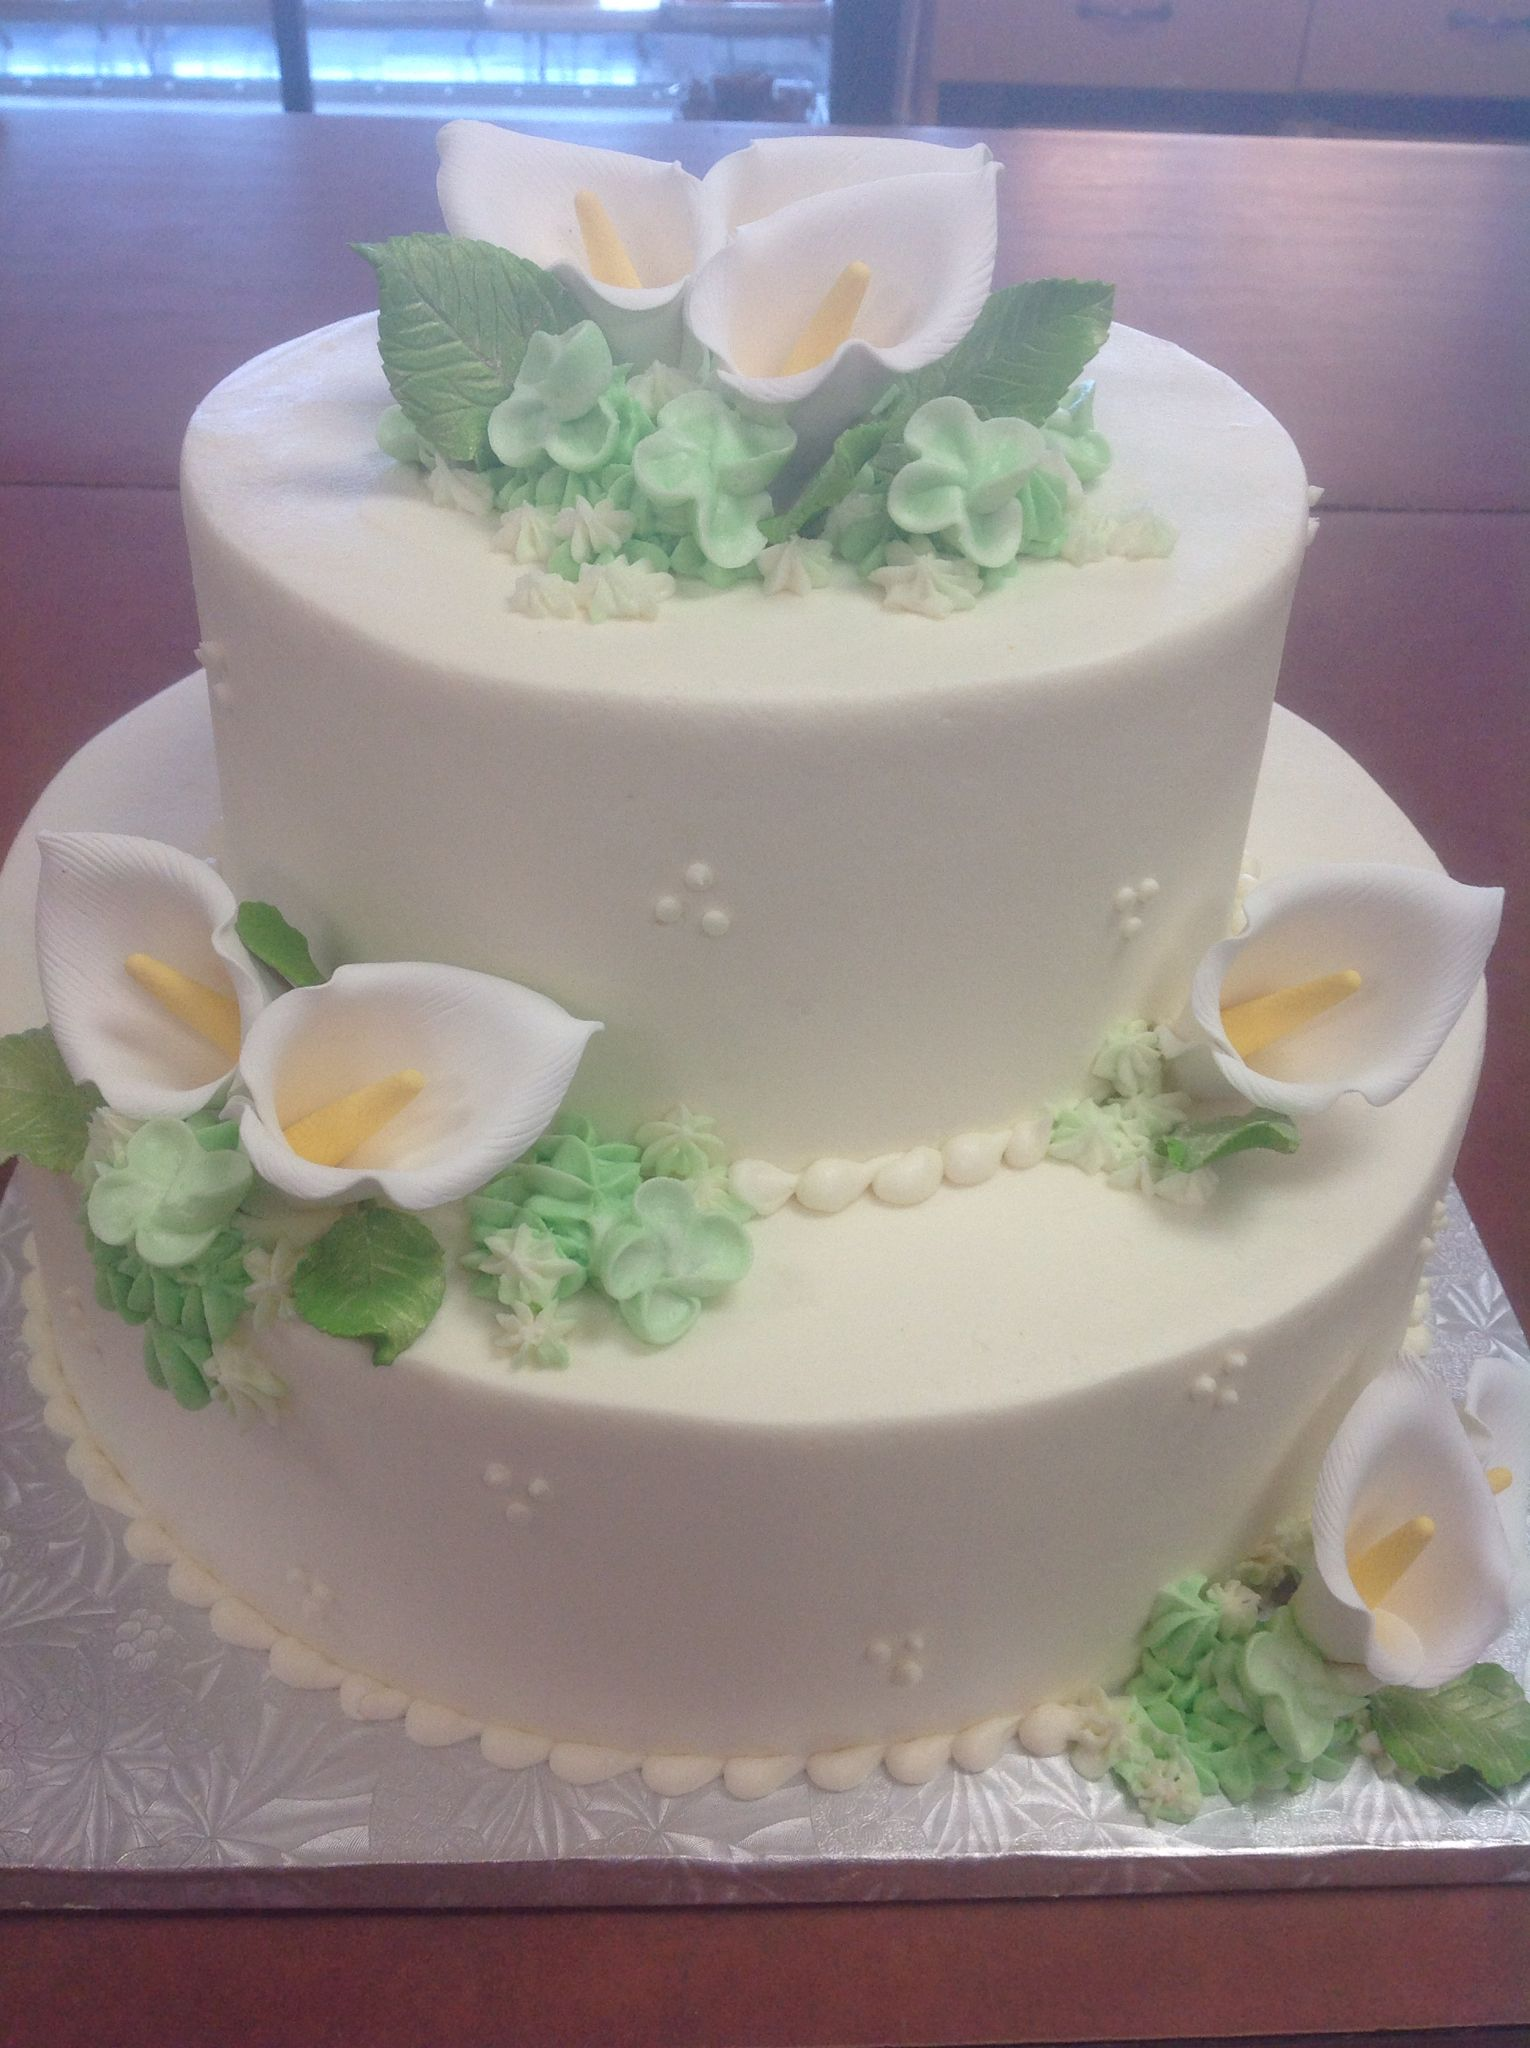 Specialty wedding cakes by Dolce and Biscotti Fine Italian Bakery in